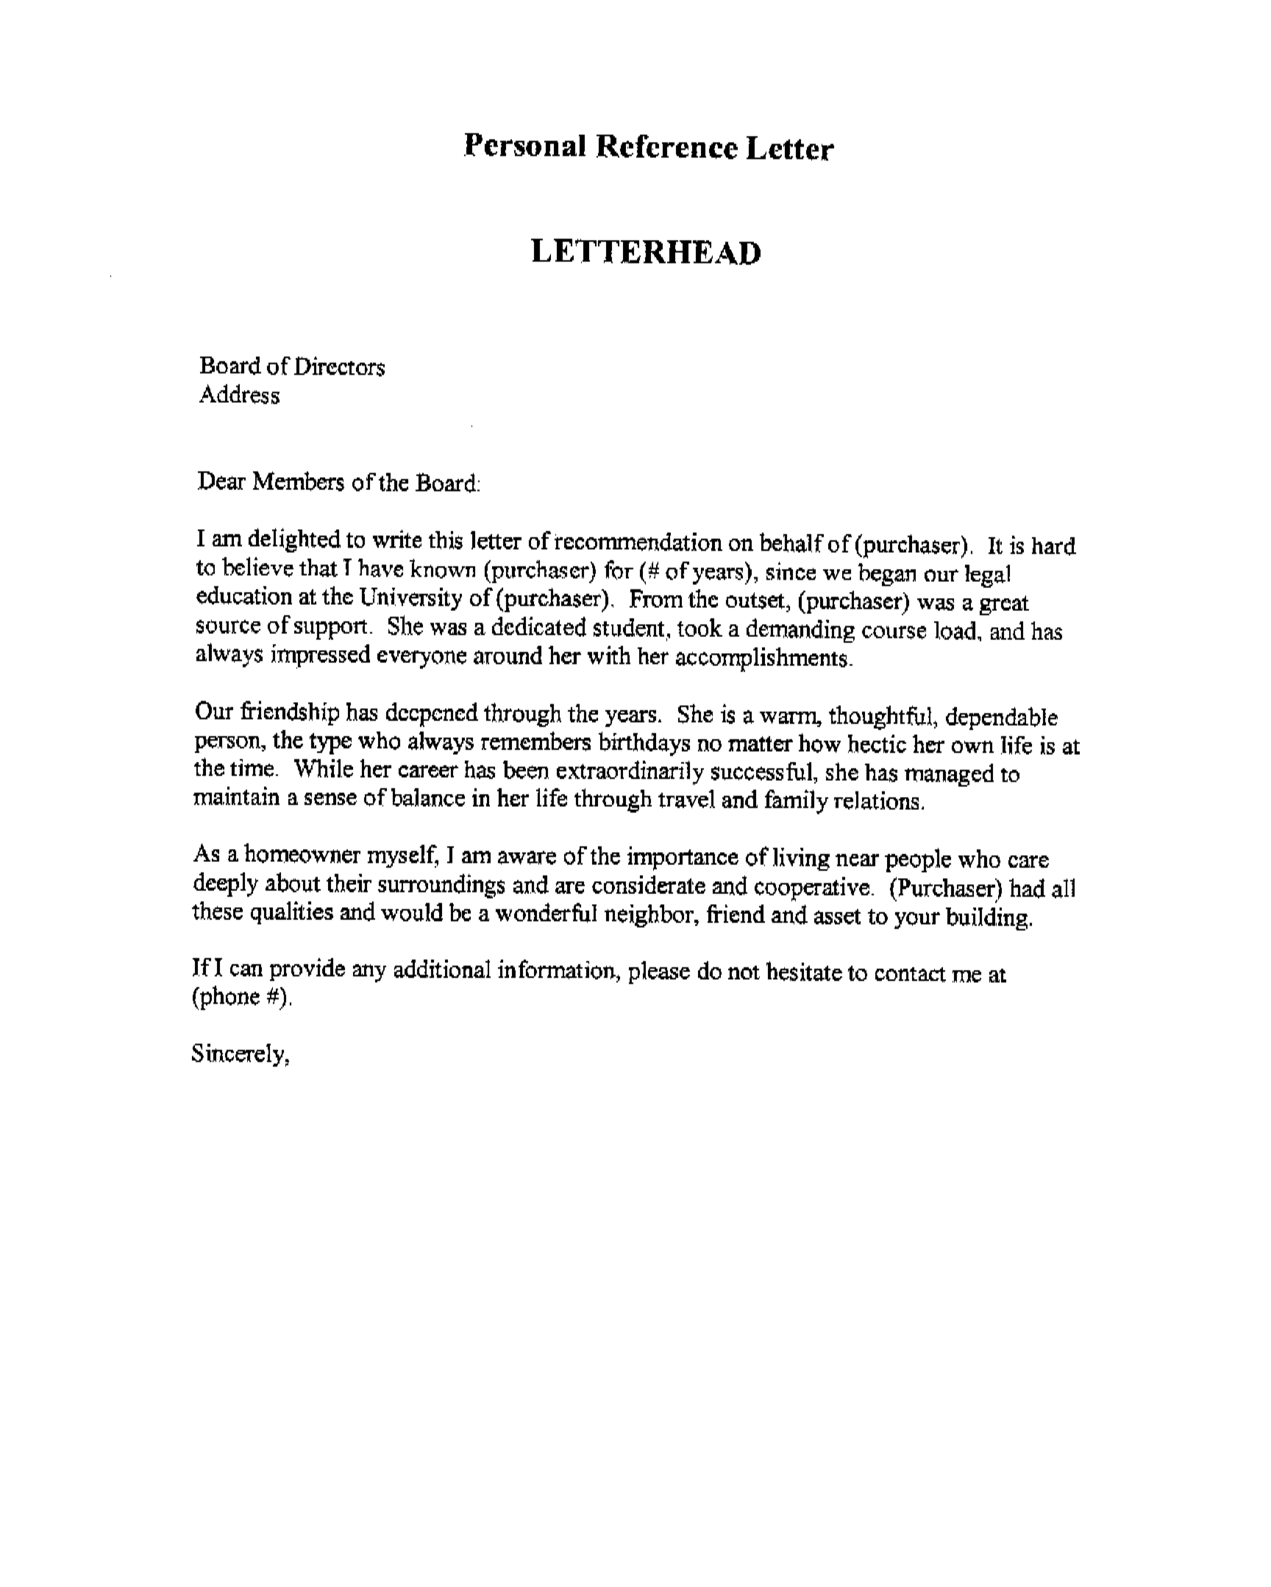 Sample letter of recommendation recommendation letter sample for recommendation letter sample recommendation letter sample for school admission thecheapjerseys Image collections